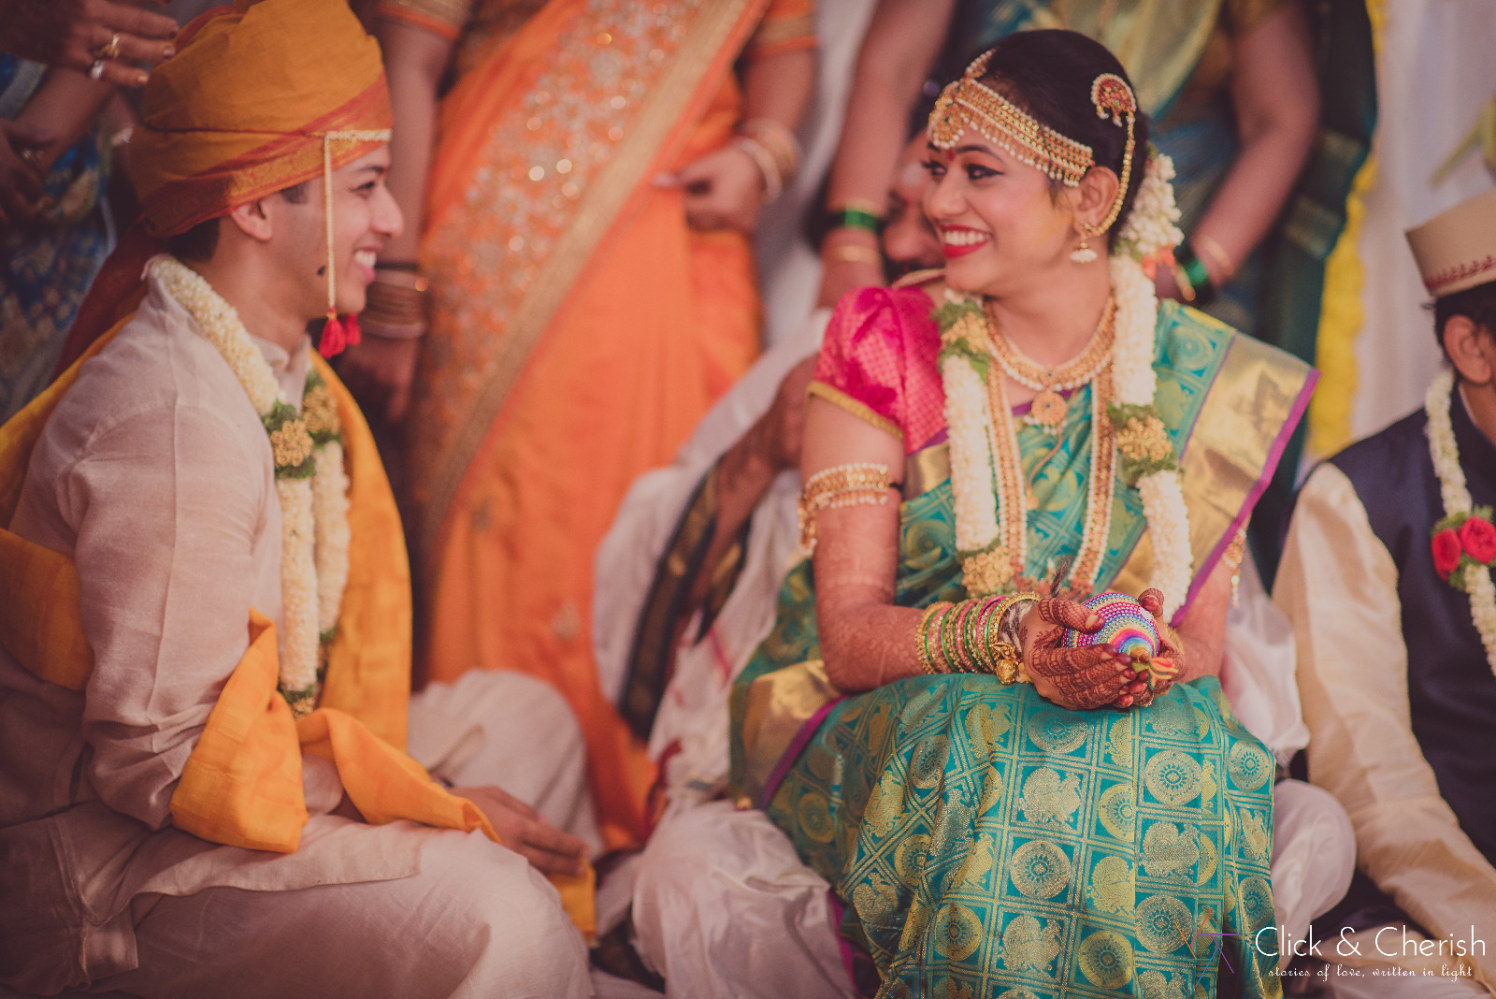 Coral Green Kanjeevaram Saree With Golden Borders With Gold And Pearl Jewellery by Dushyantha Kumar C Wedding-photography Bridal-jewellery-and-accessories | Weddings Photos & Ideas